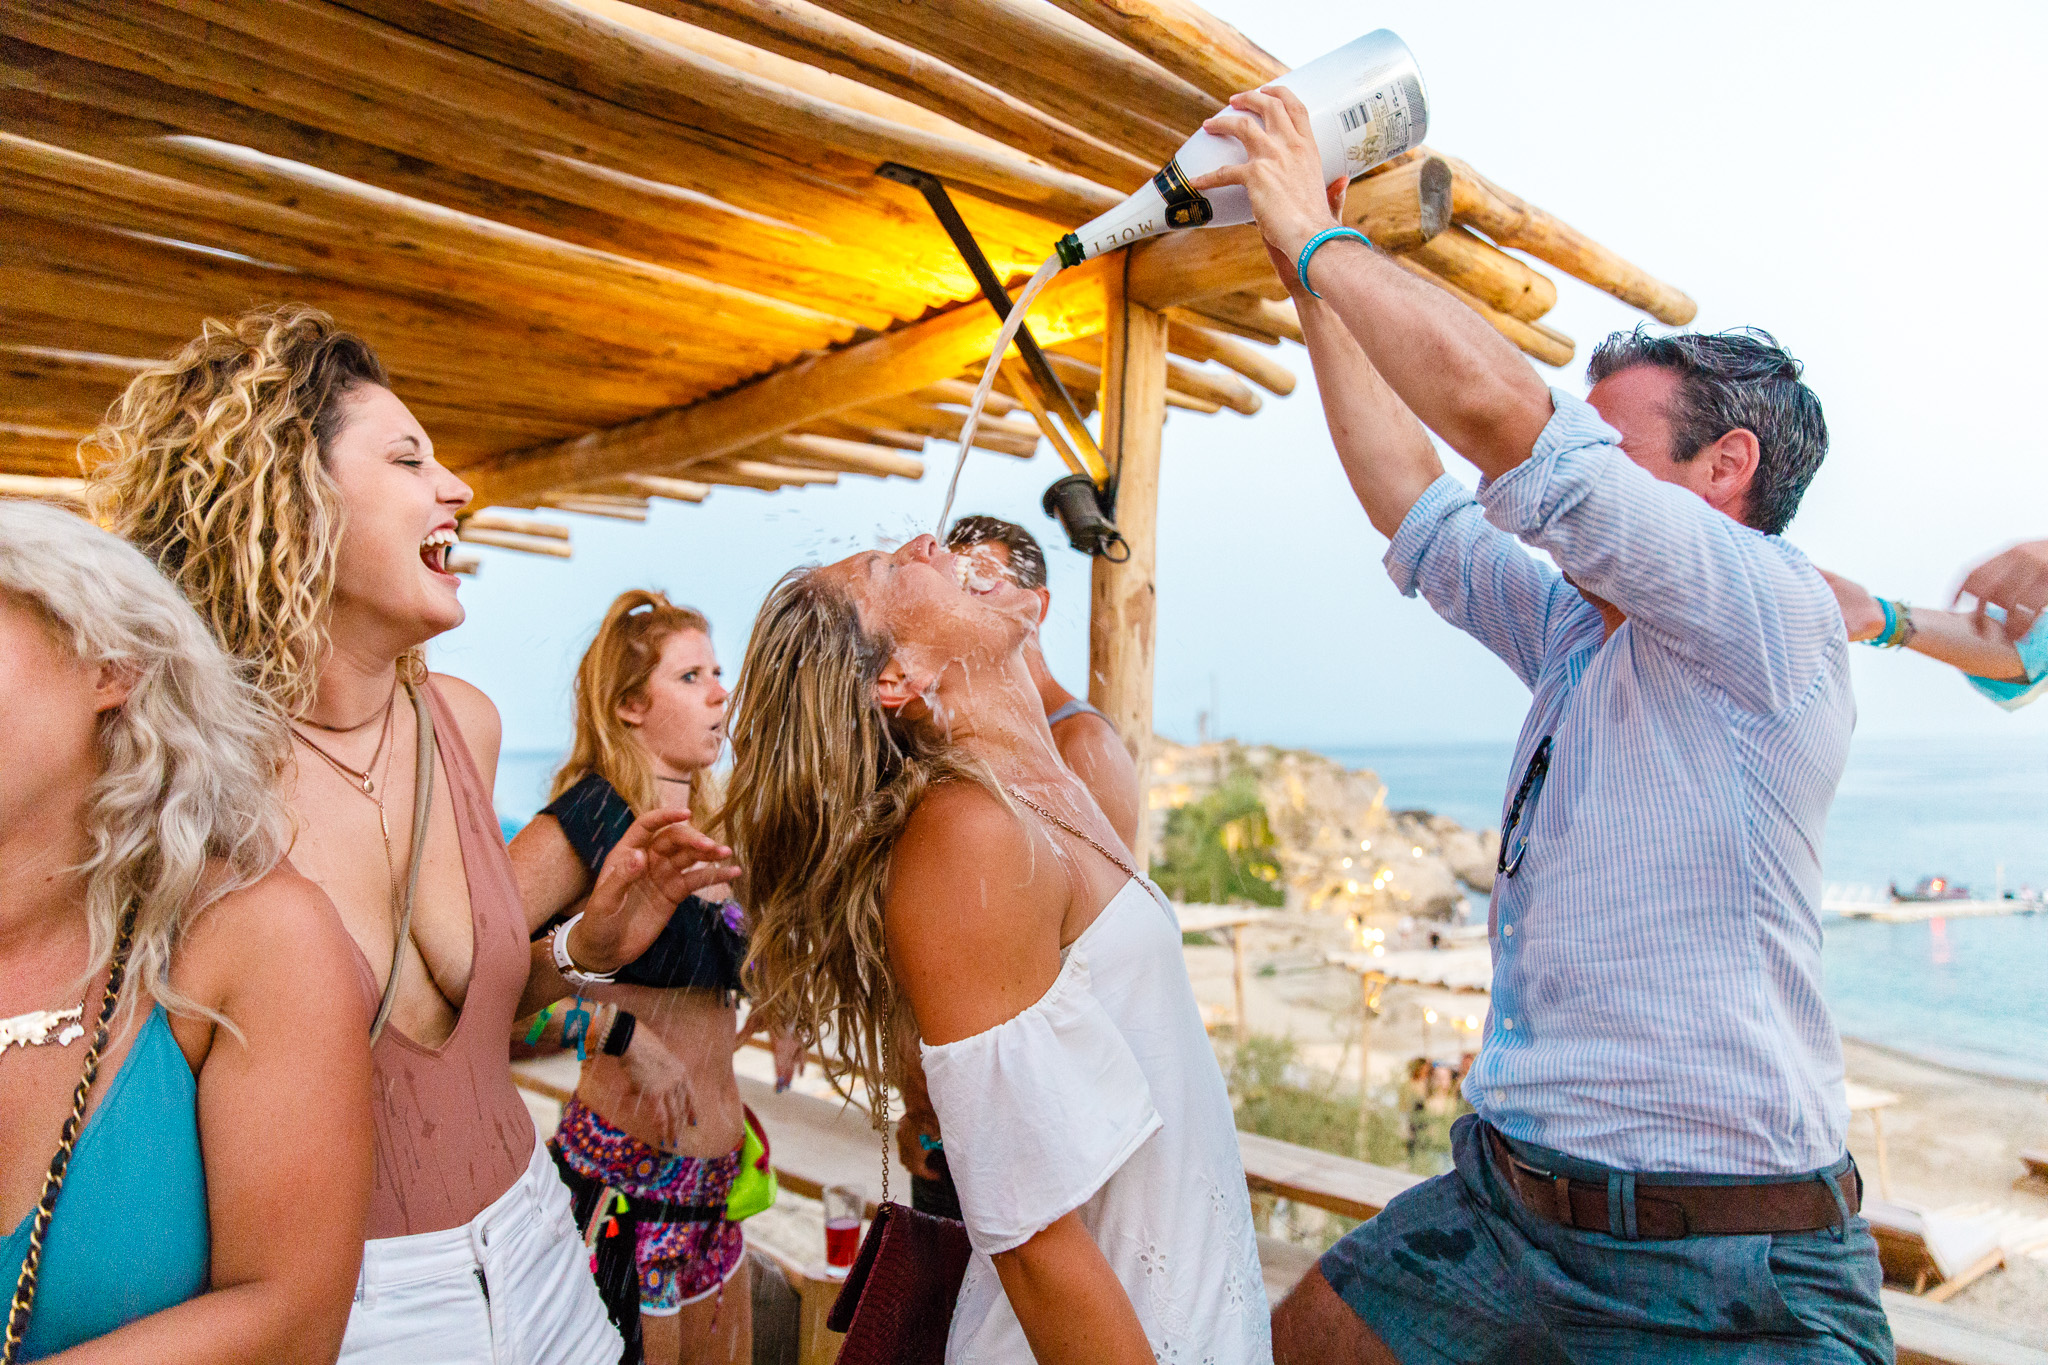 Taking champagne showers literally - The Mykonos Route